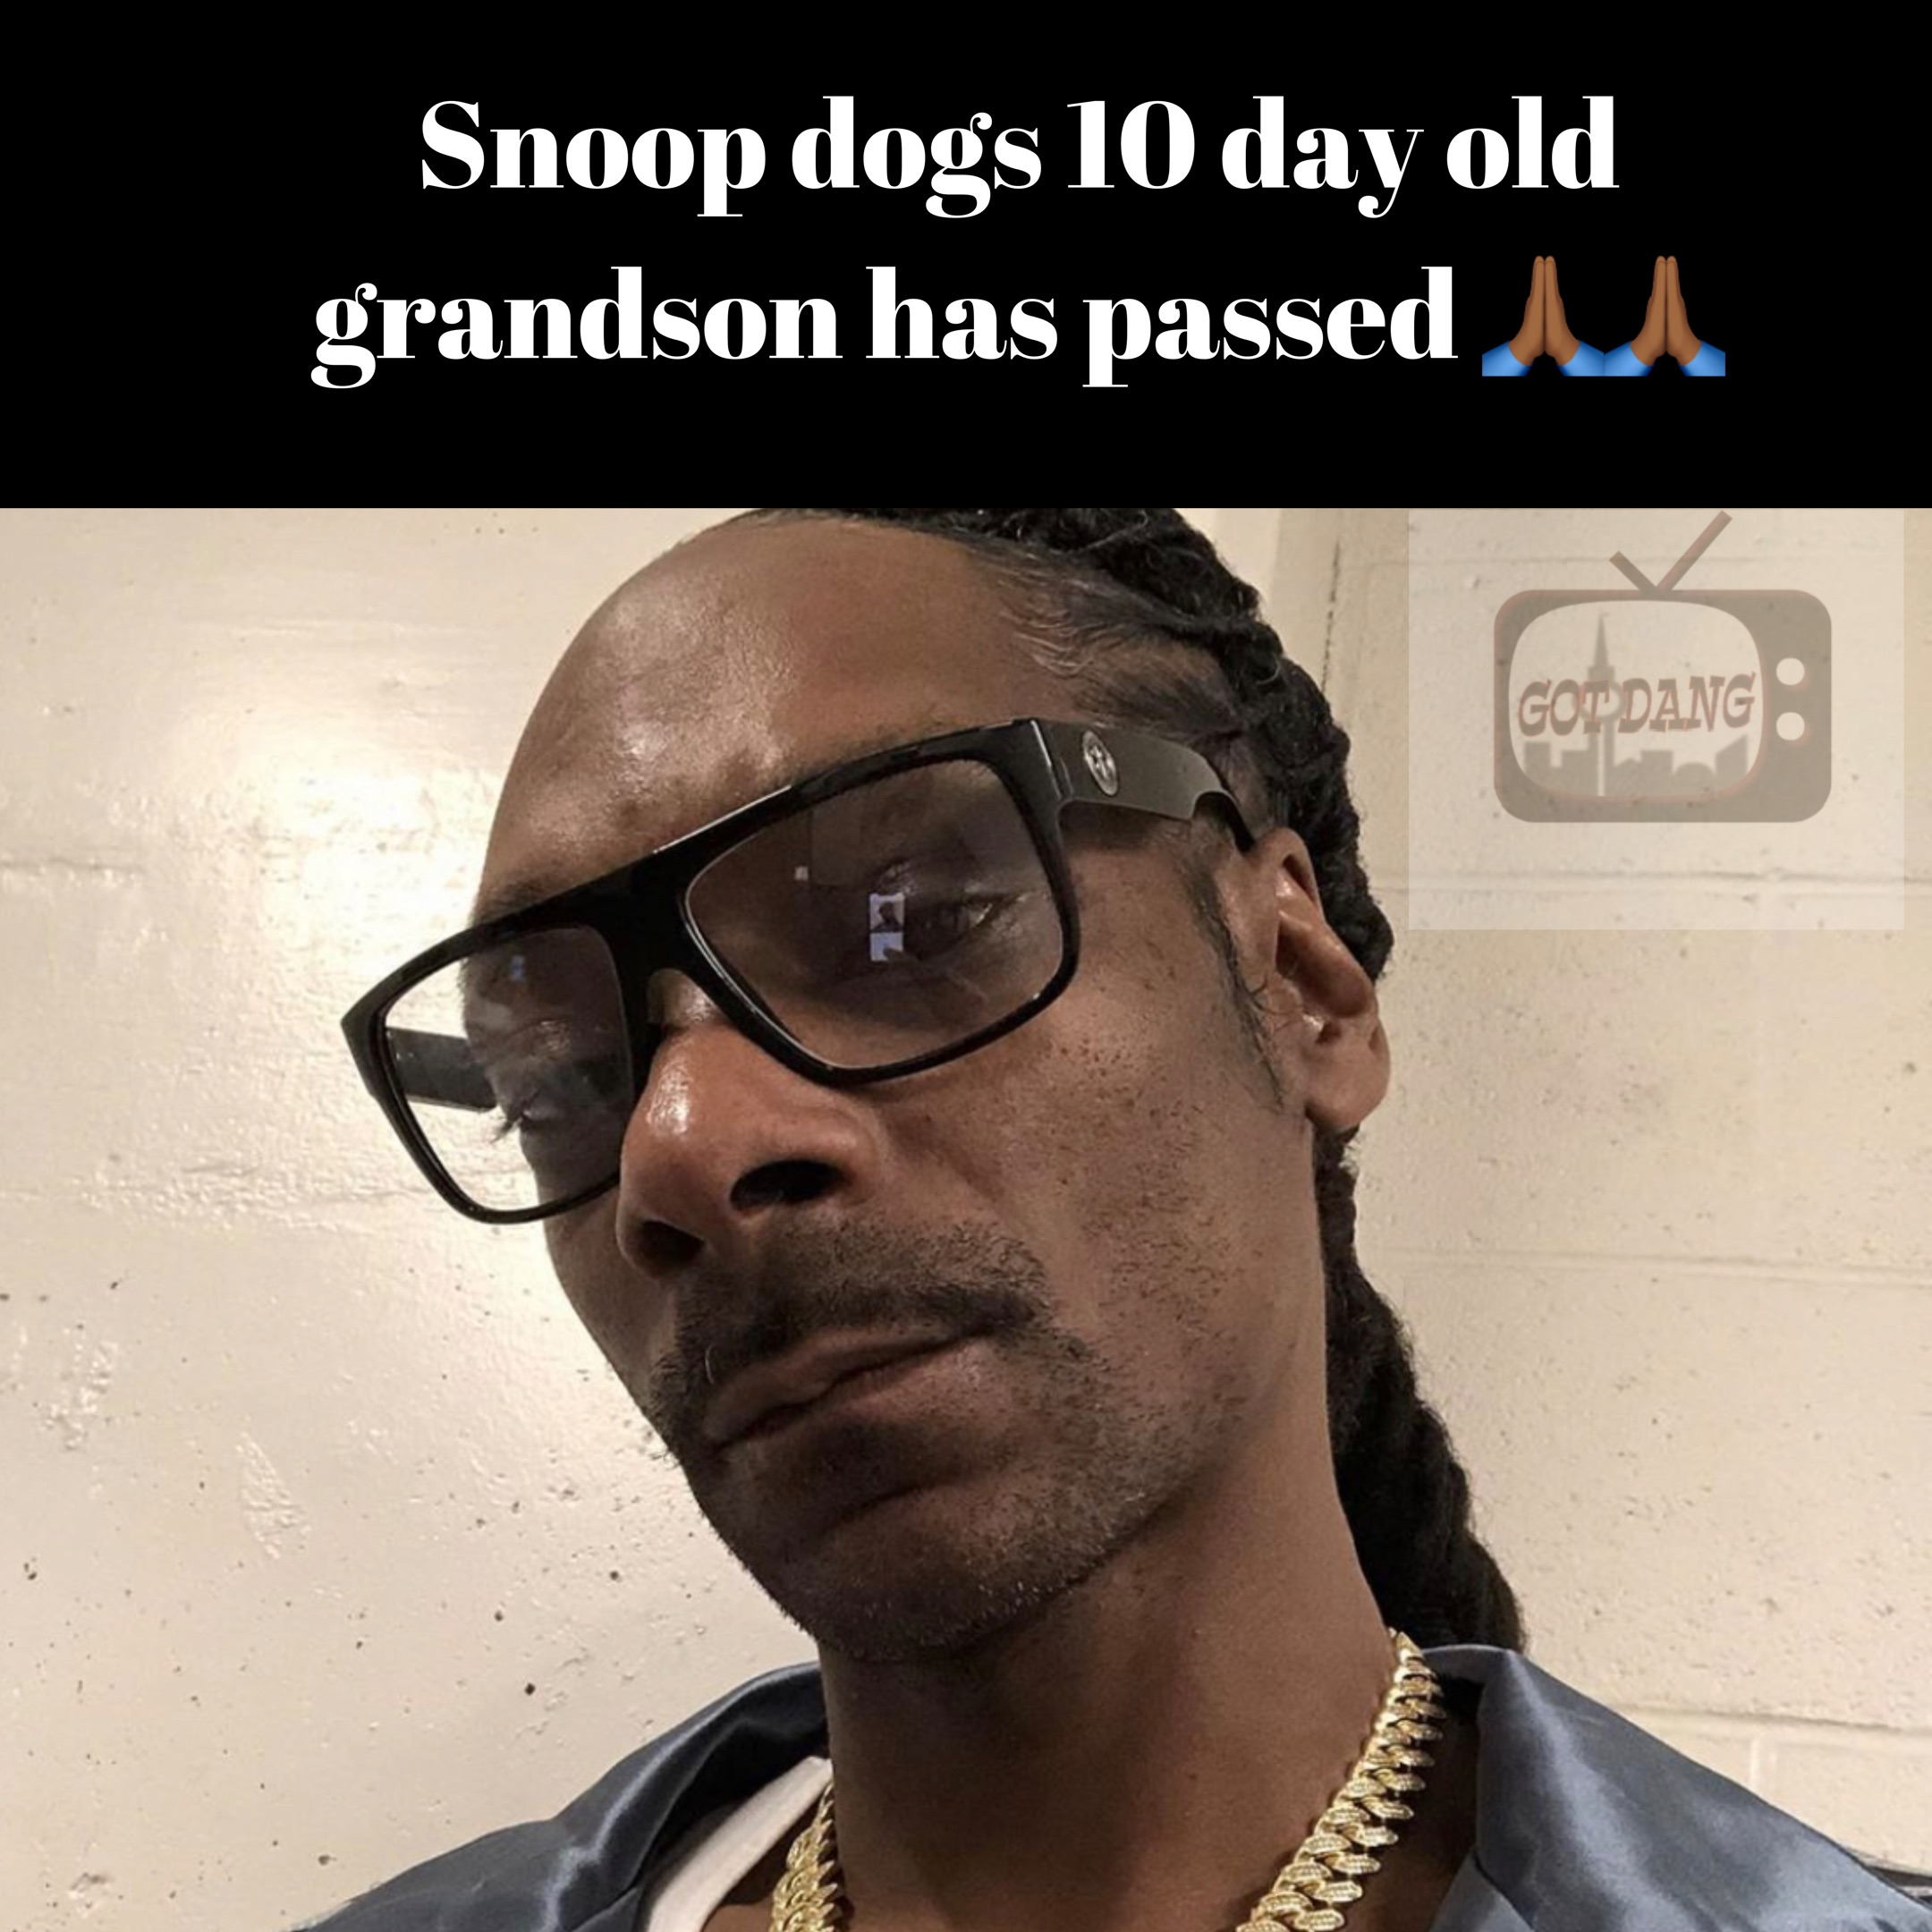 Snoop doggs 10 day old grandson has passed !